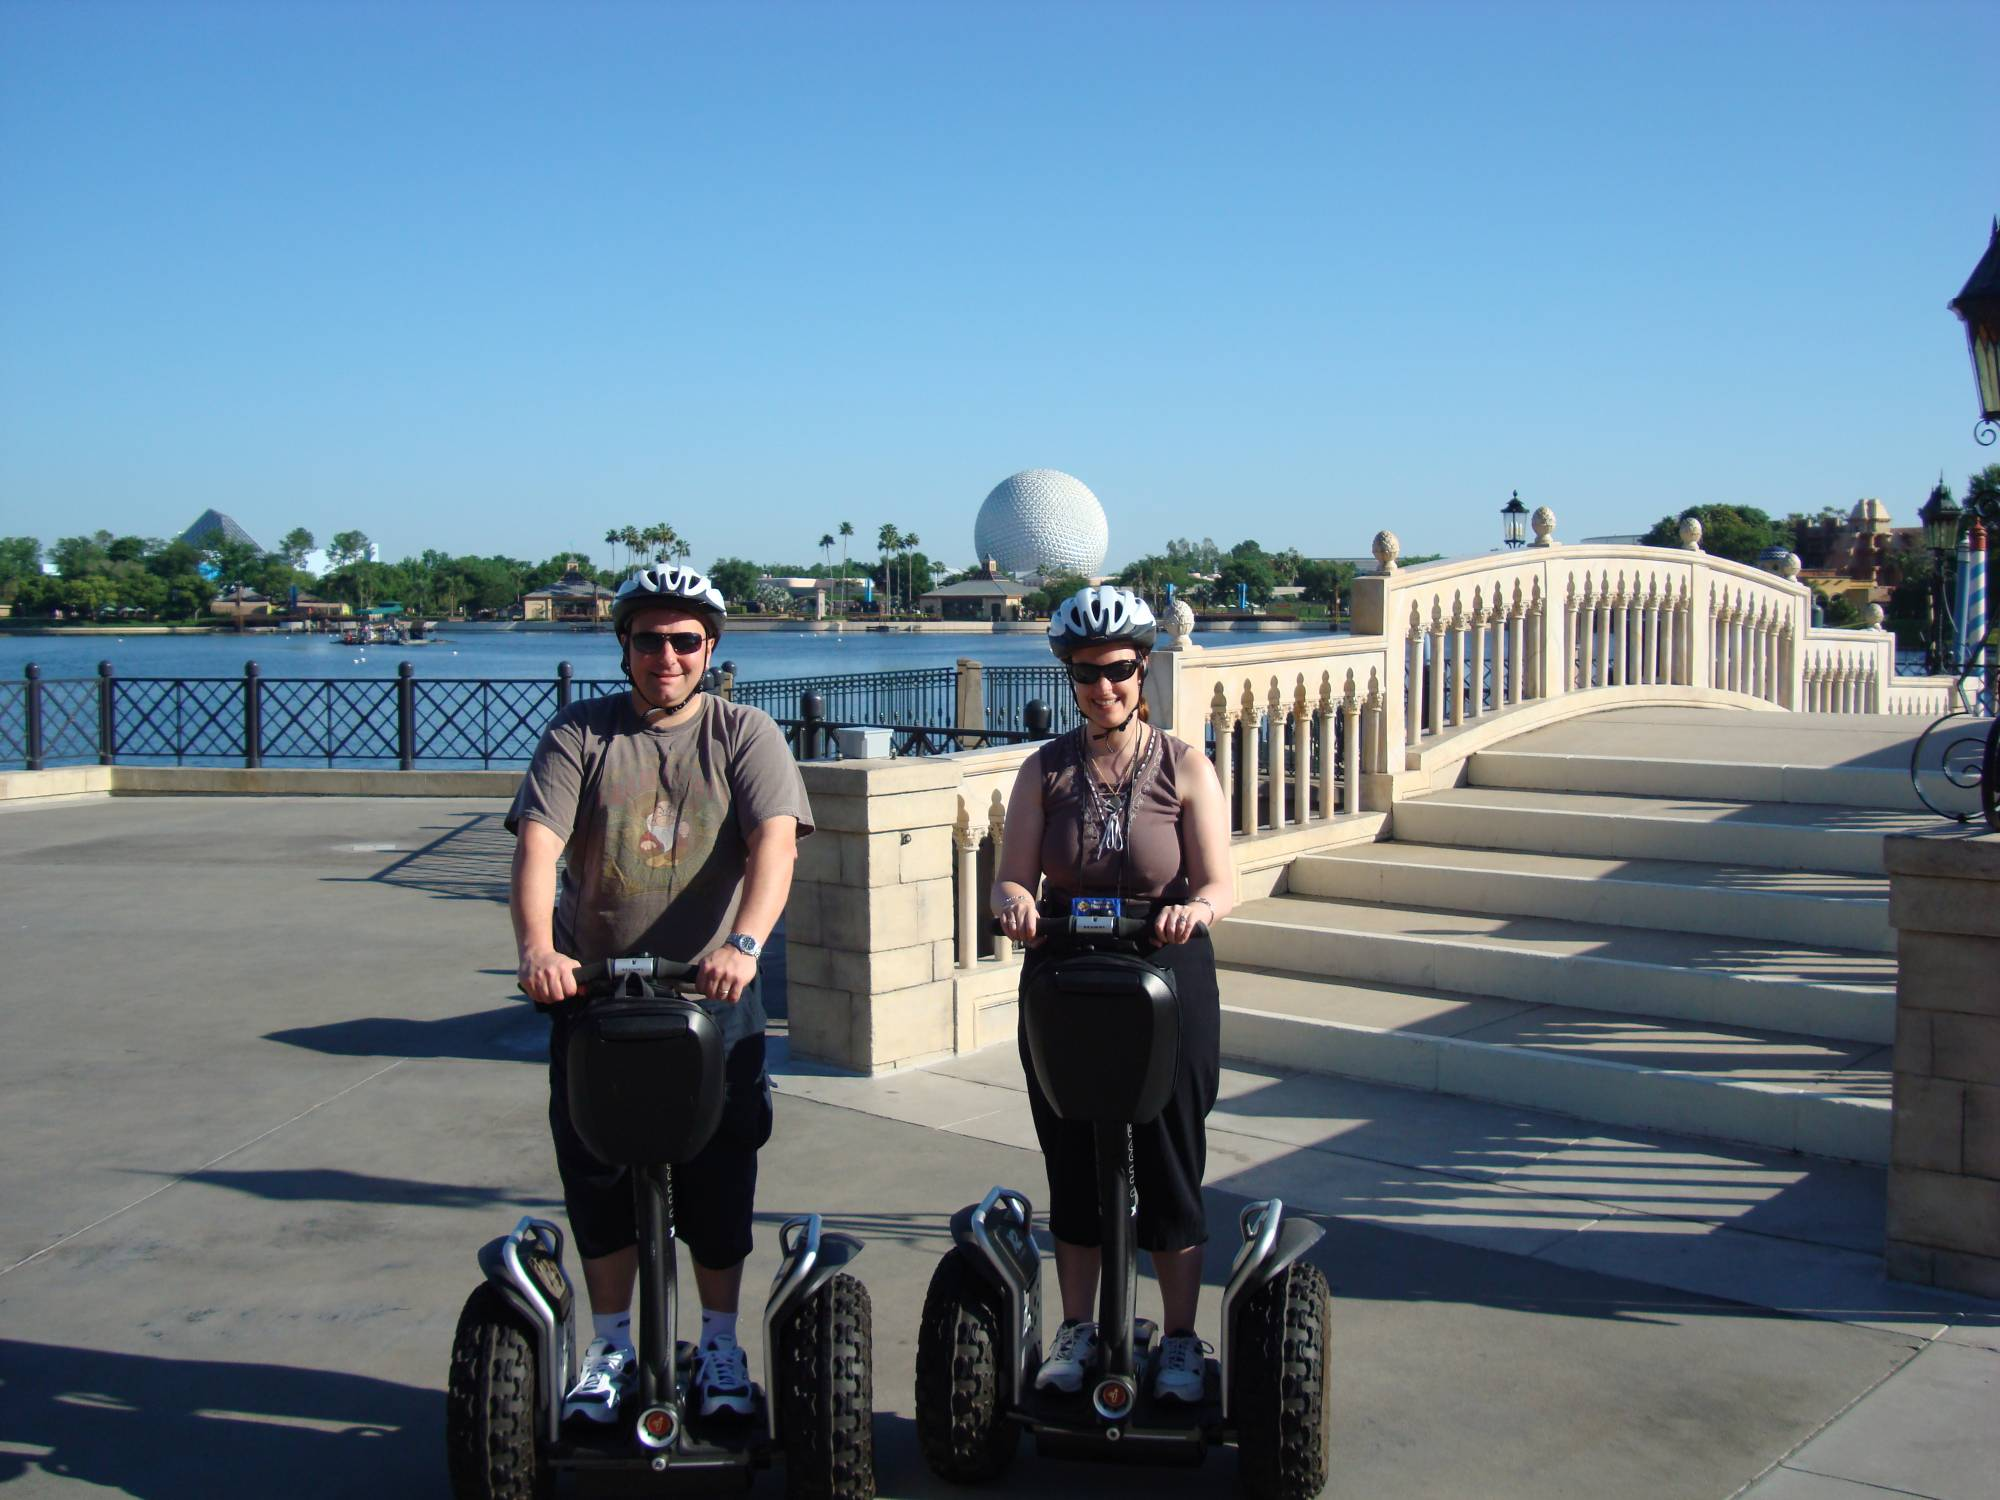 Learn more about Nature Inspired design at Epcot on a Segway |PassPorter.com